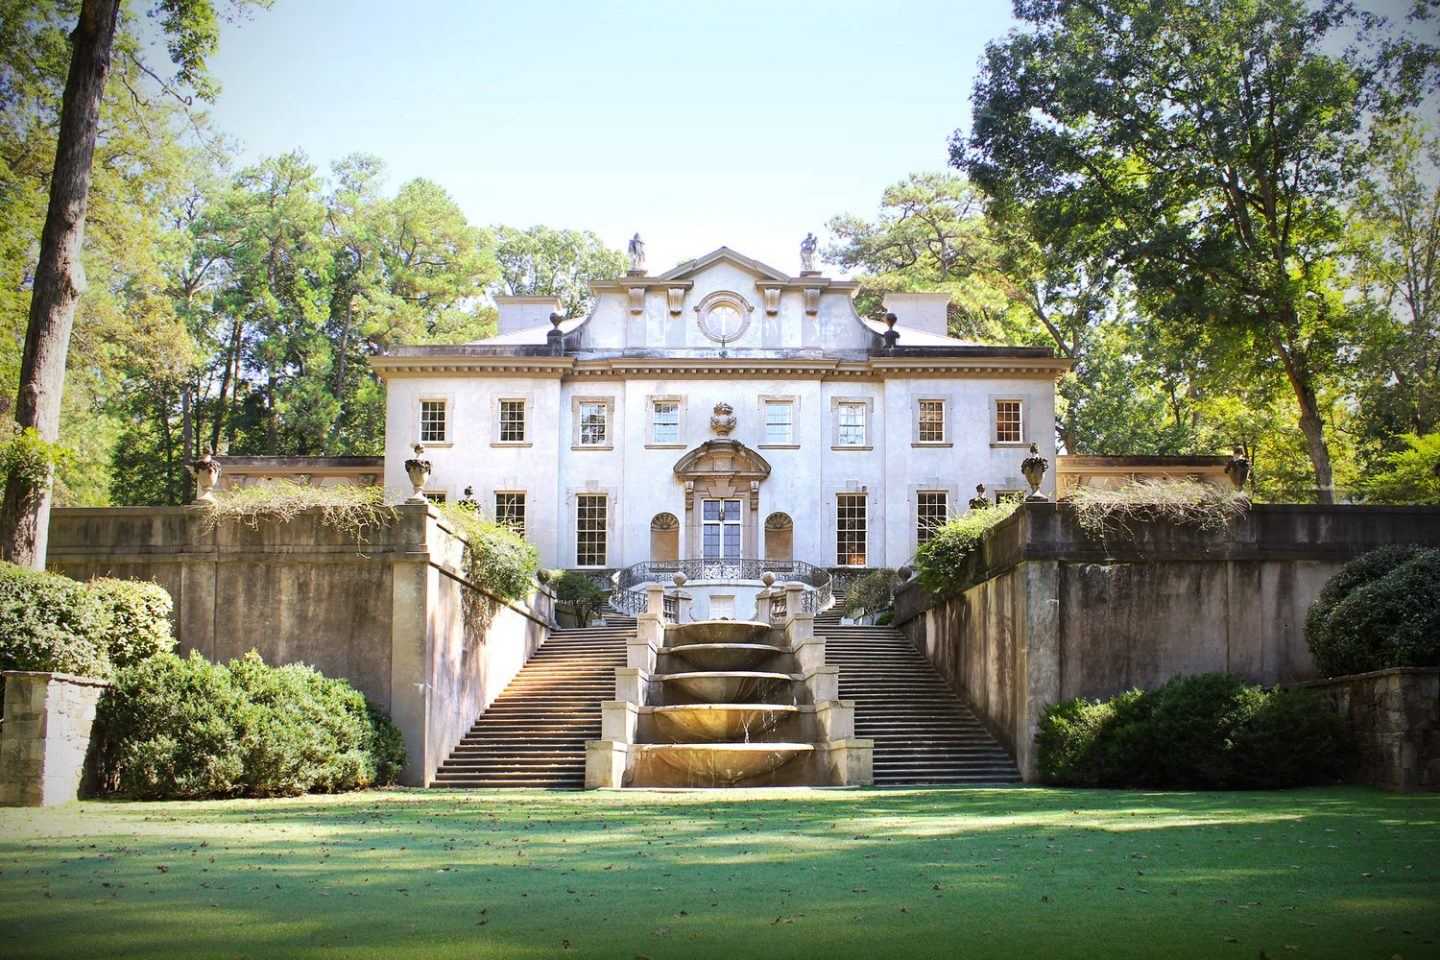 1928 Swan House, designed by Philip T. Shutze for the Inman family. The house is operated as part of the Atlanta History Center and is maintained as a 1920s and 30s historic house museum.